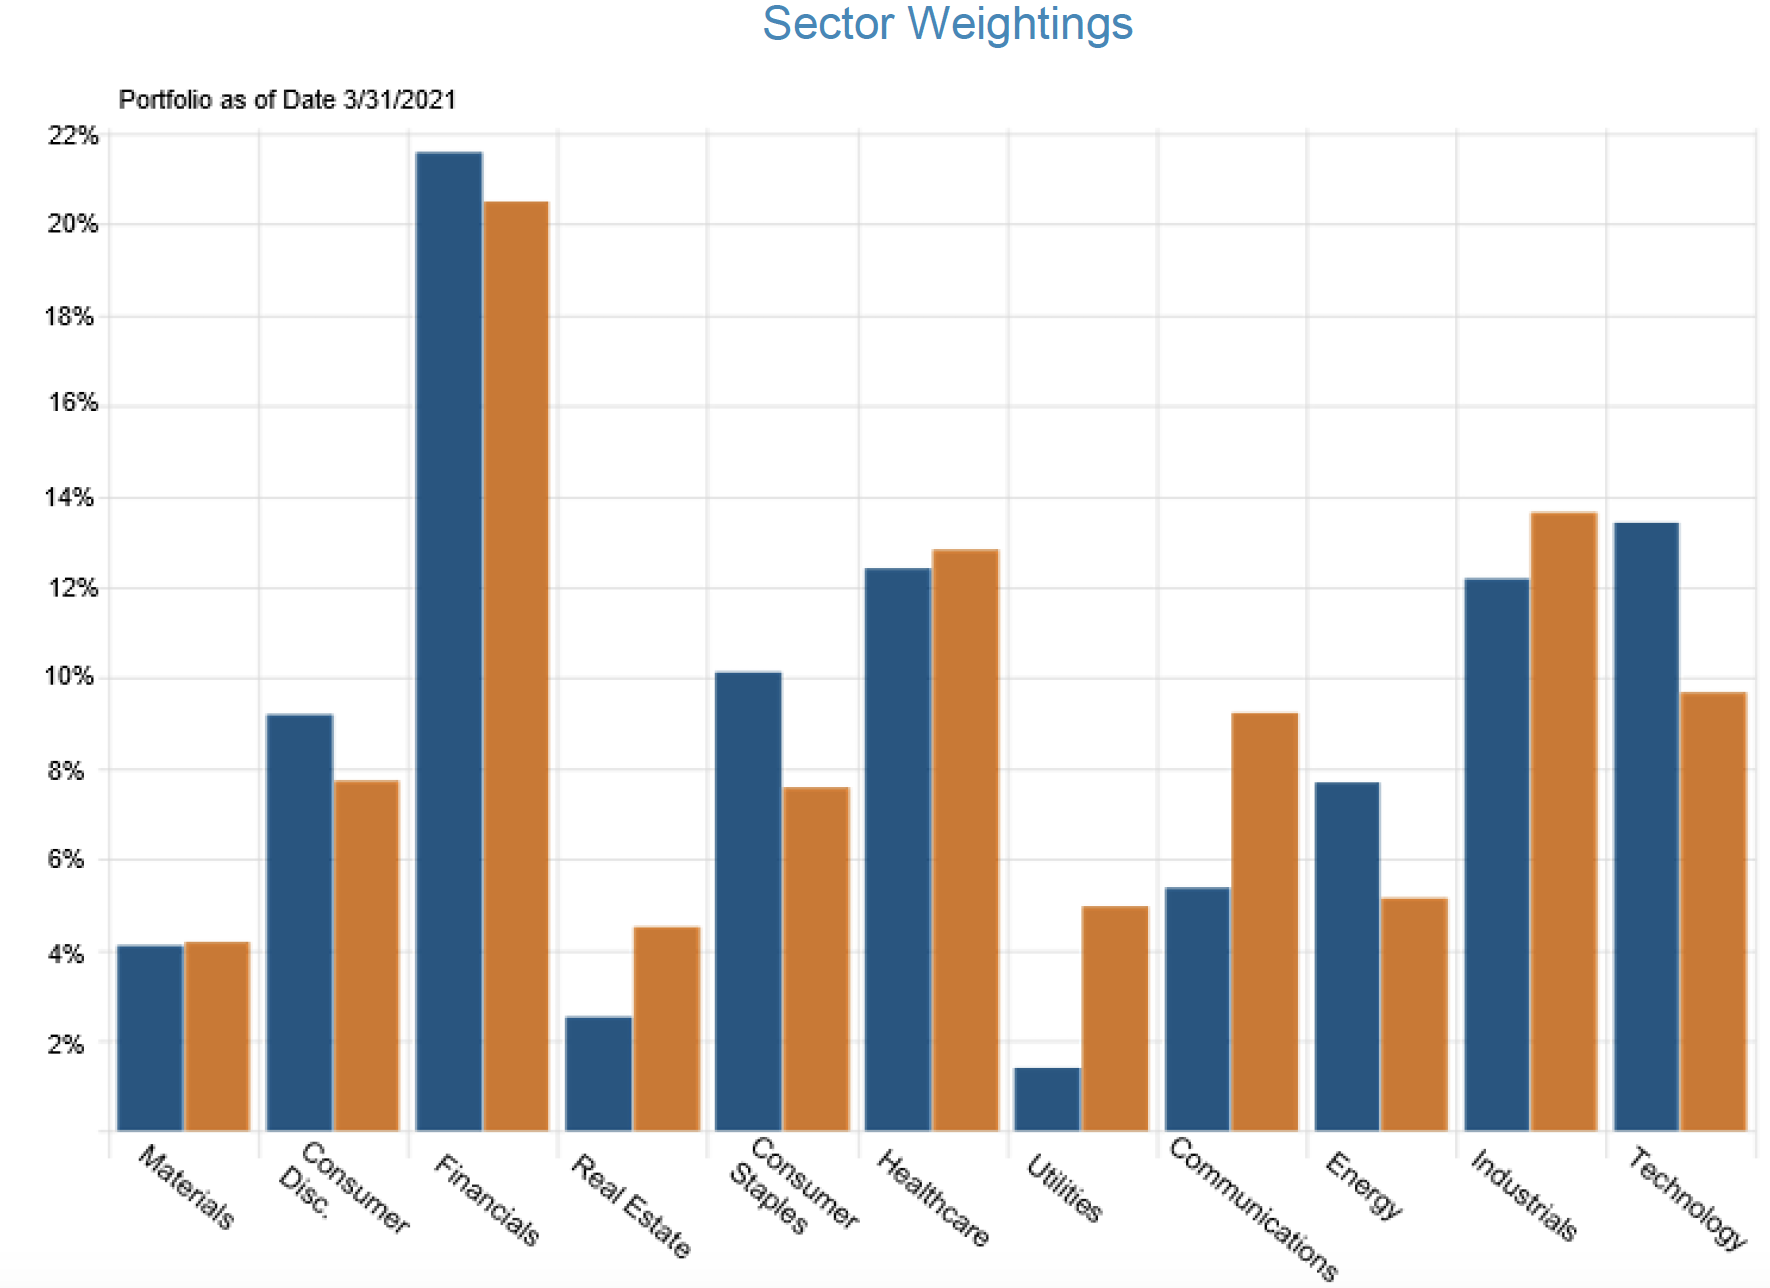 Sector Weighting Q1 2021